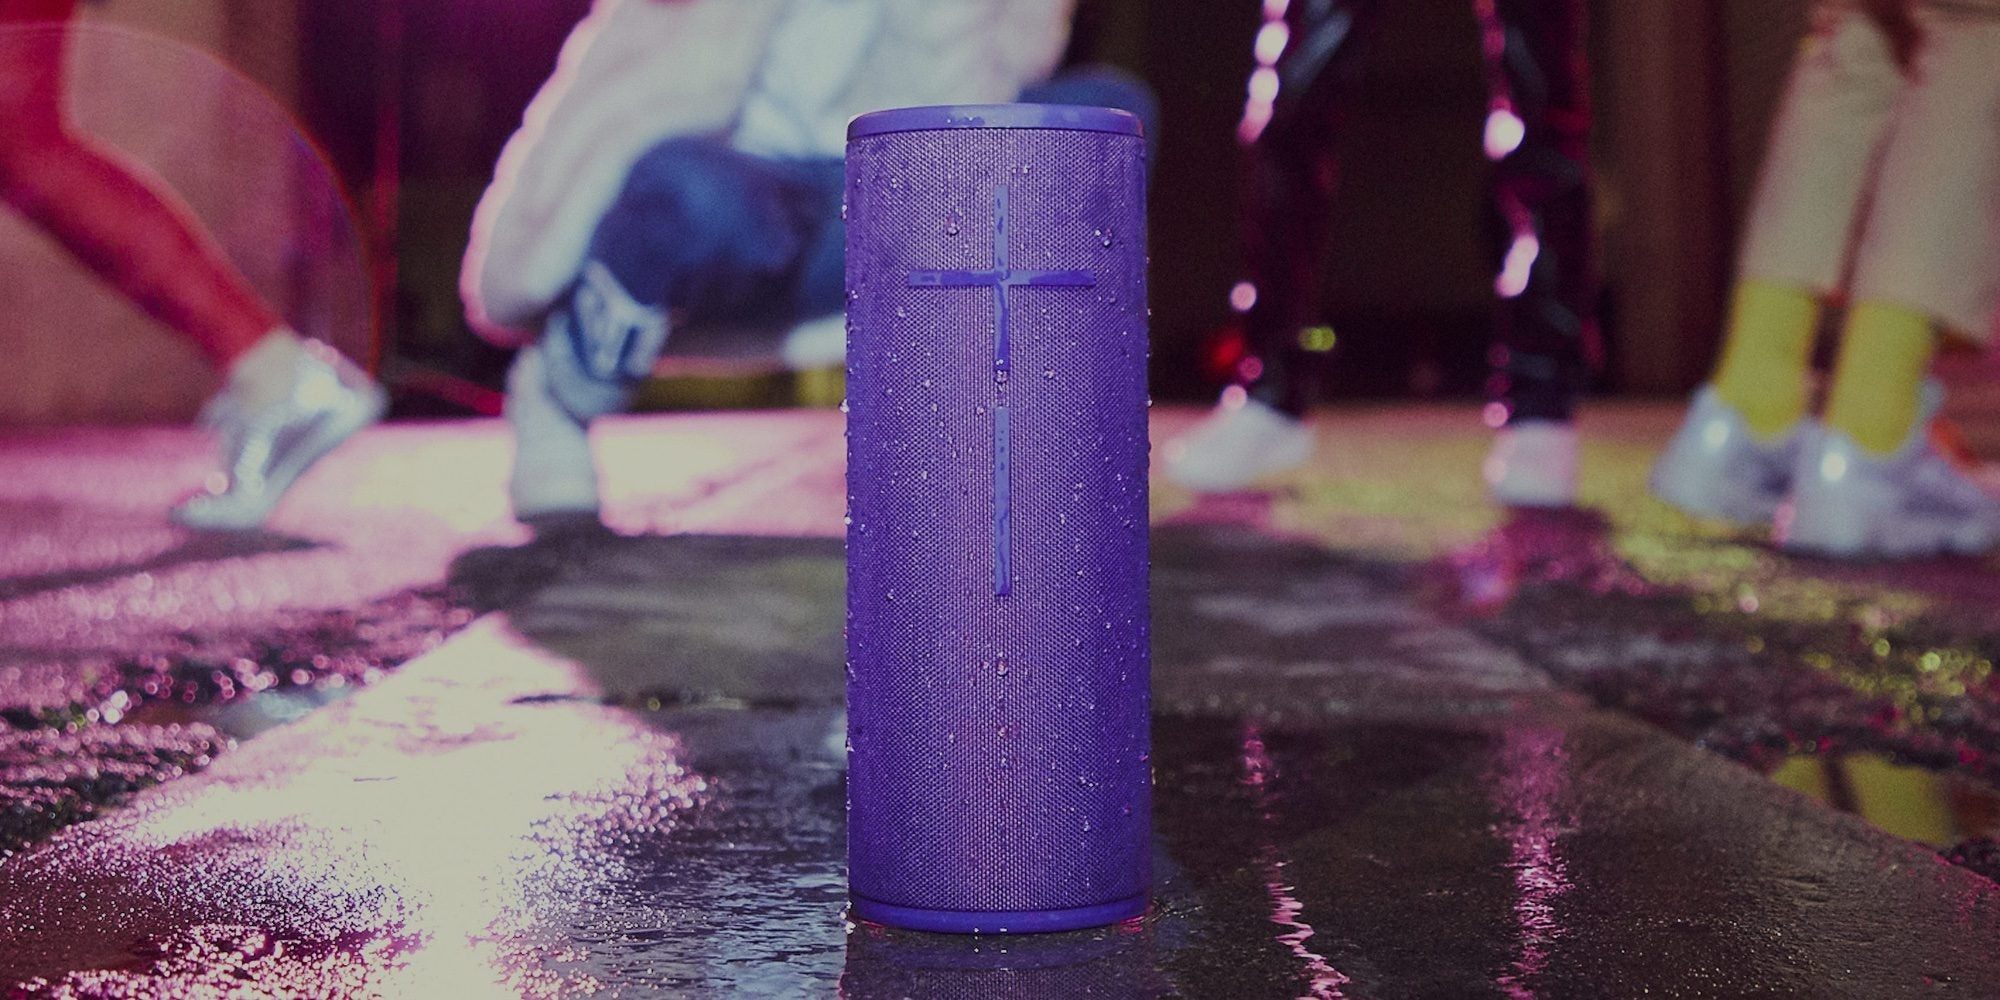 Ultimate Ears Boom 3 - Super-portable wireless Bluetooth® speaker: balanced 360° sound, deep bass, one-touch music control, water, dust & drop proof, and stunning high-performance fabric. It's the ultimate go-anywhere speaker.